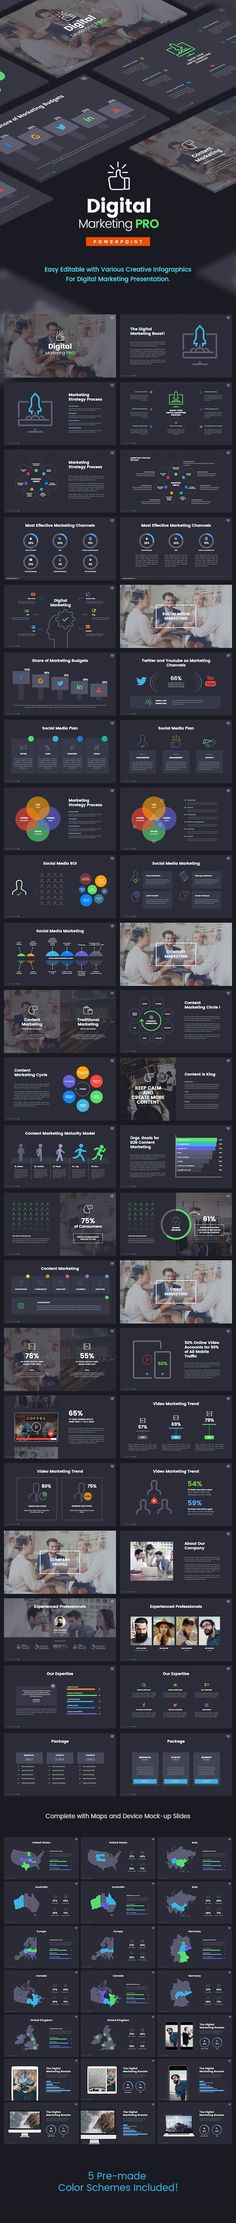 The Digital Marketing Pro - Powerpoint Template - PowerPoint Templates Presentation Templates